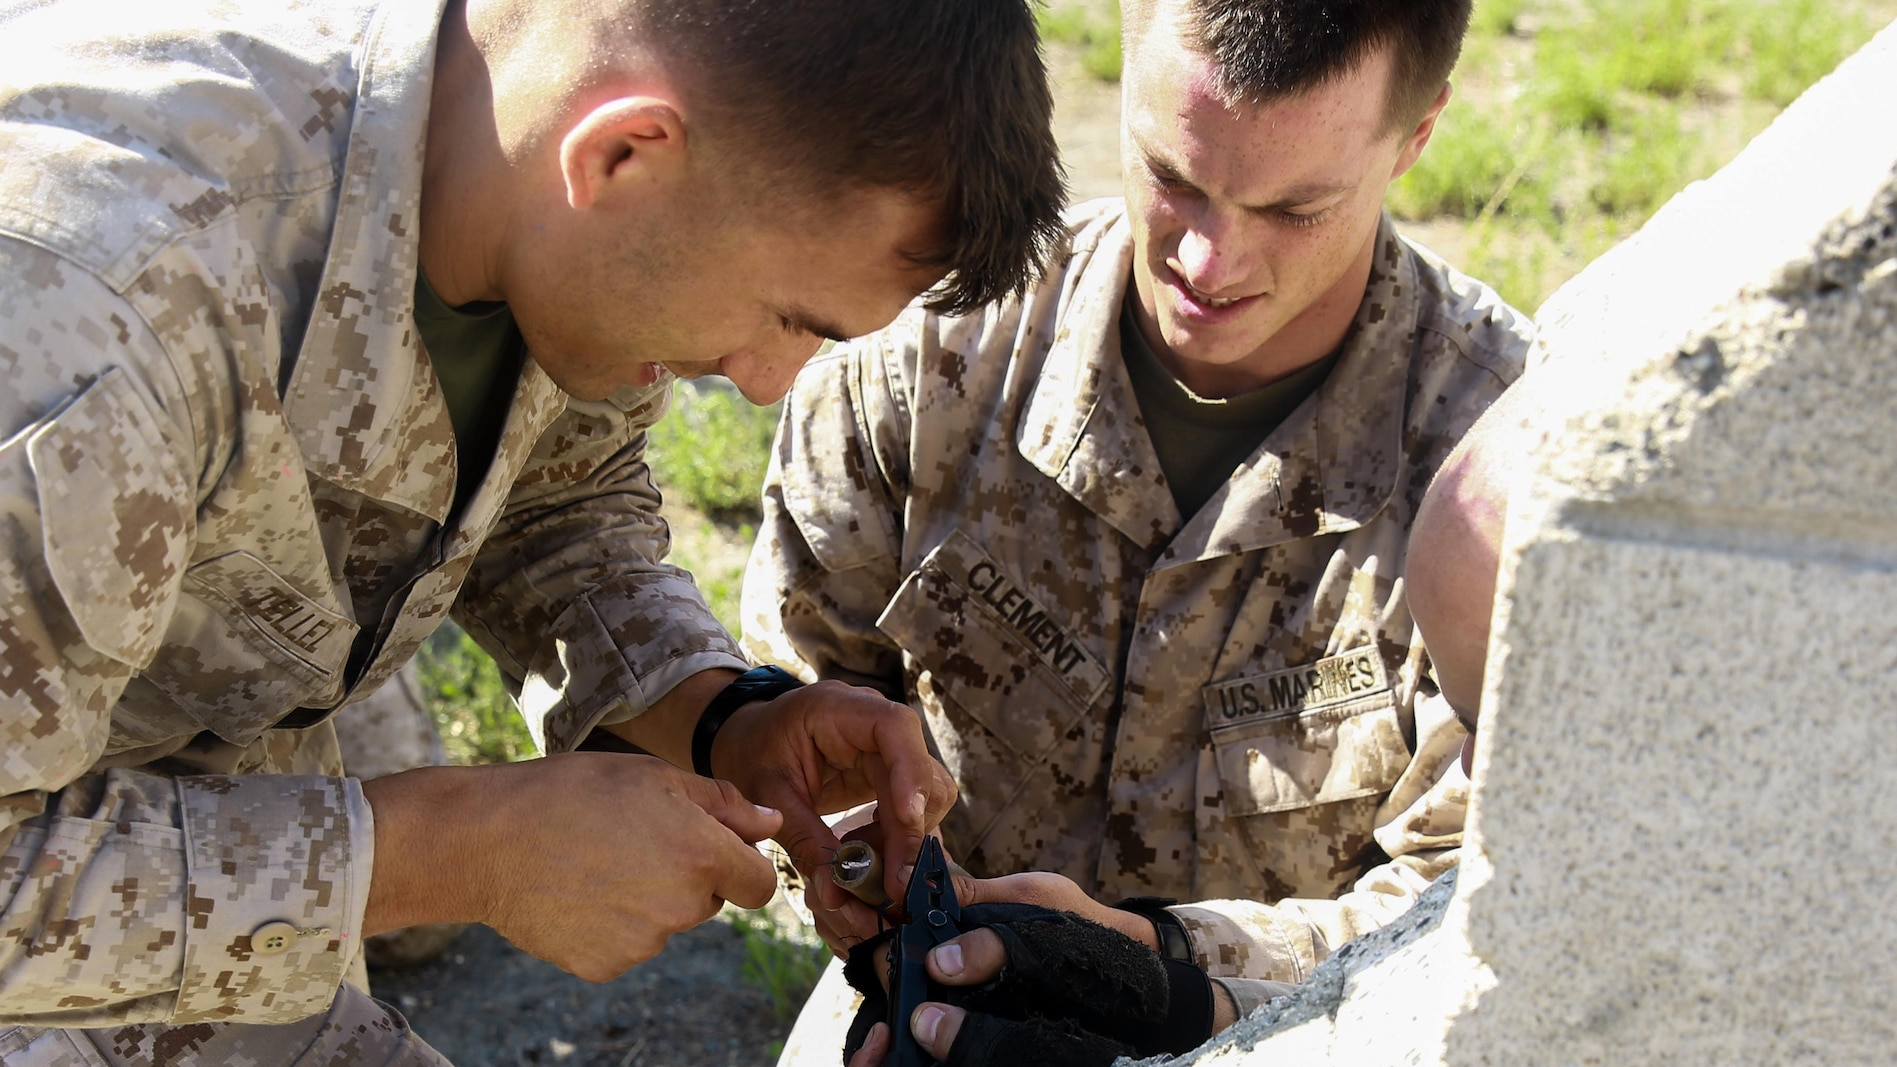 Marines with 1st Battalion, 7th Marine Regiment, and 2nd Battalion, 7th Marine Regiment, set a simulated booby trap to alert nearby Marines when an enemy is attempting to infiltrate their position during the culminating event of 1st Marine Division Schools' Urban Leaders Course at Marine Corps Base Camp Pendleton, Calif., Aug. 12, 2015. The course is a 15-day period of instruction that includes classwork, combat marksmanship and physical training executed in a simulated urban combat environment.